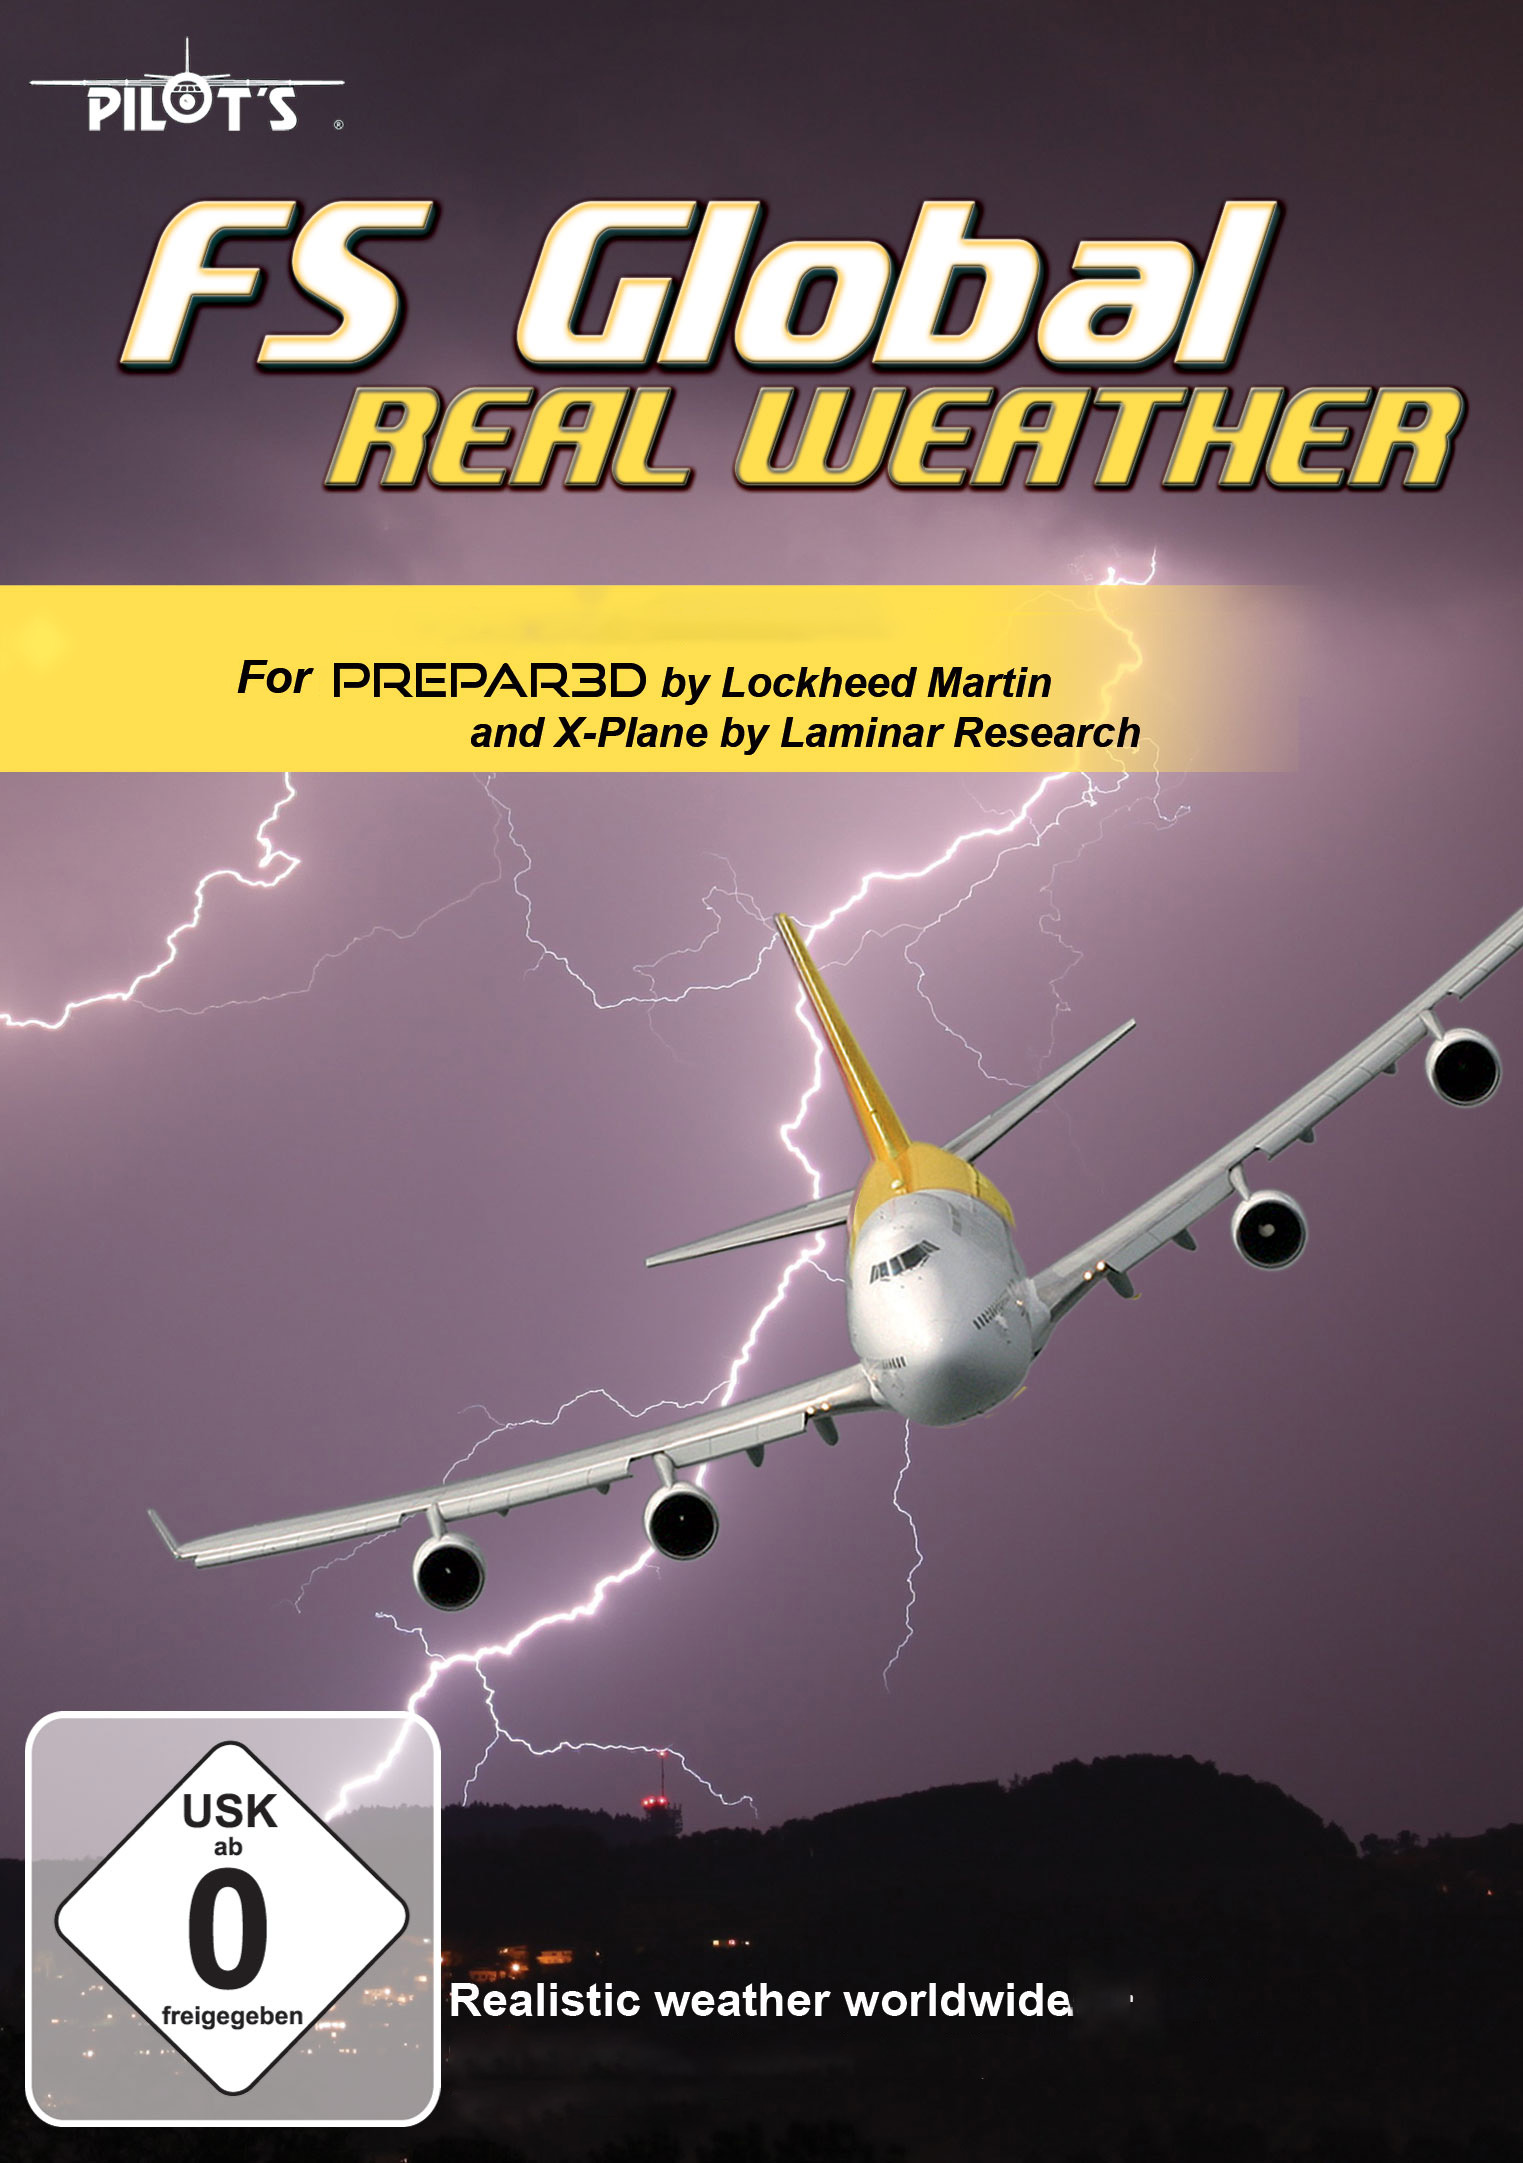 FS Global Real Weather (P3Dv4/XP11) | Aerosoft US Shop